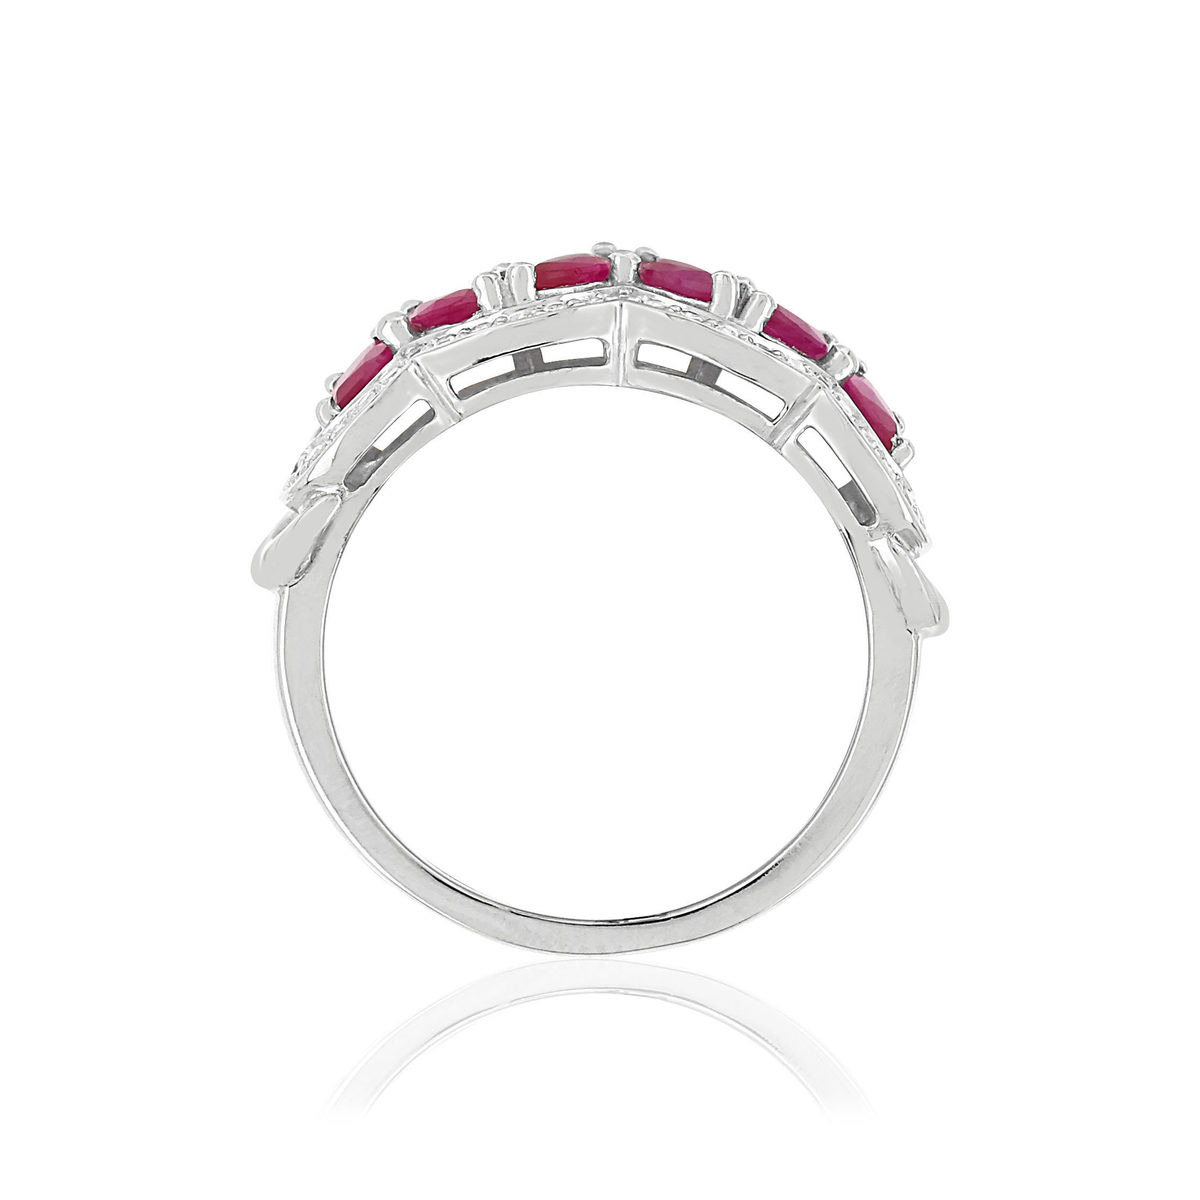 Bague MATY Or 750 blanc Rubis et Diamants - vue V2